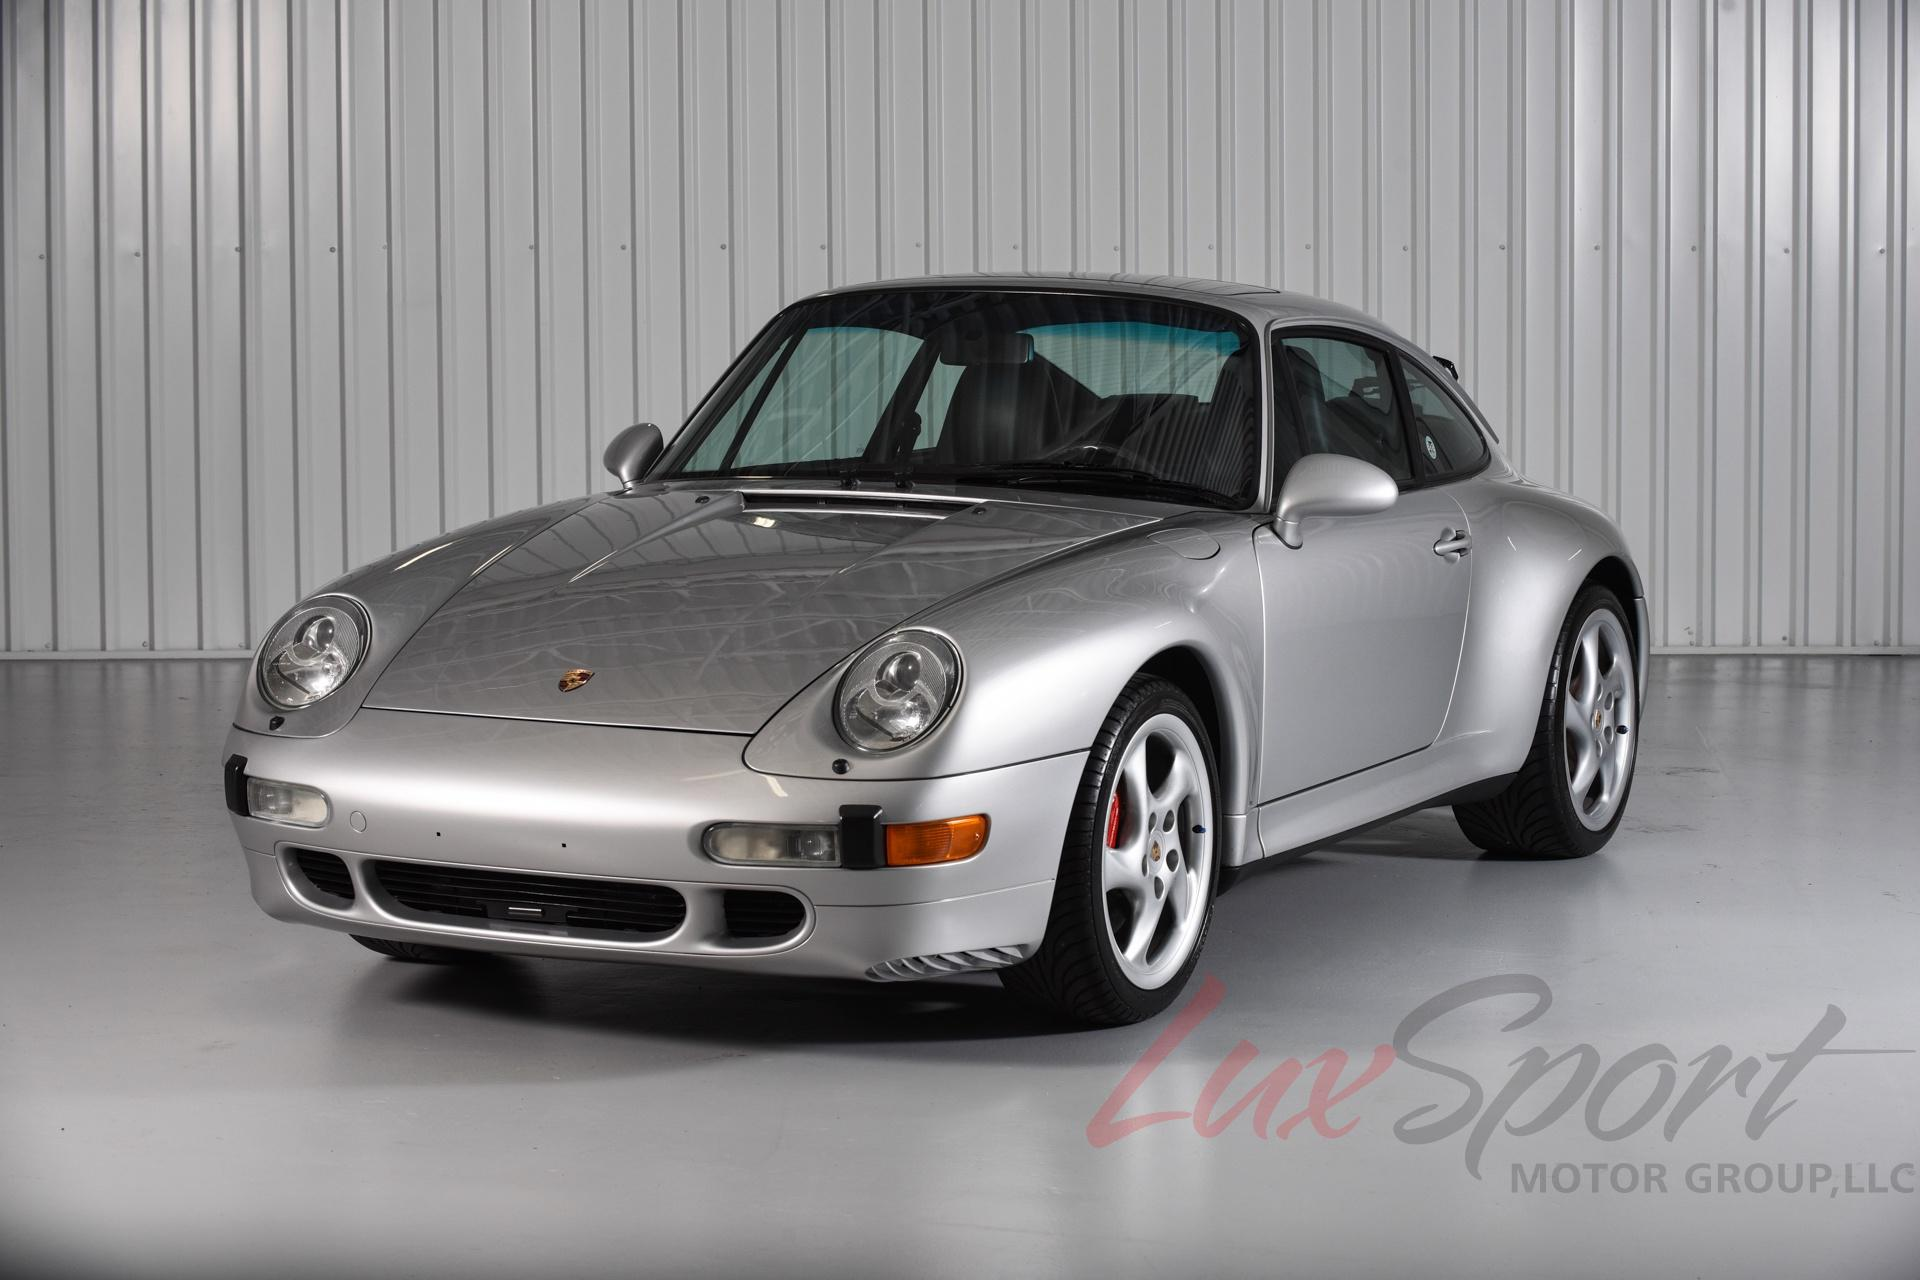 1997 porsche 993 carrera 4s coupe carrera 4s. Black Bedroom Furniture Sets. Home Design Ideas